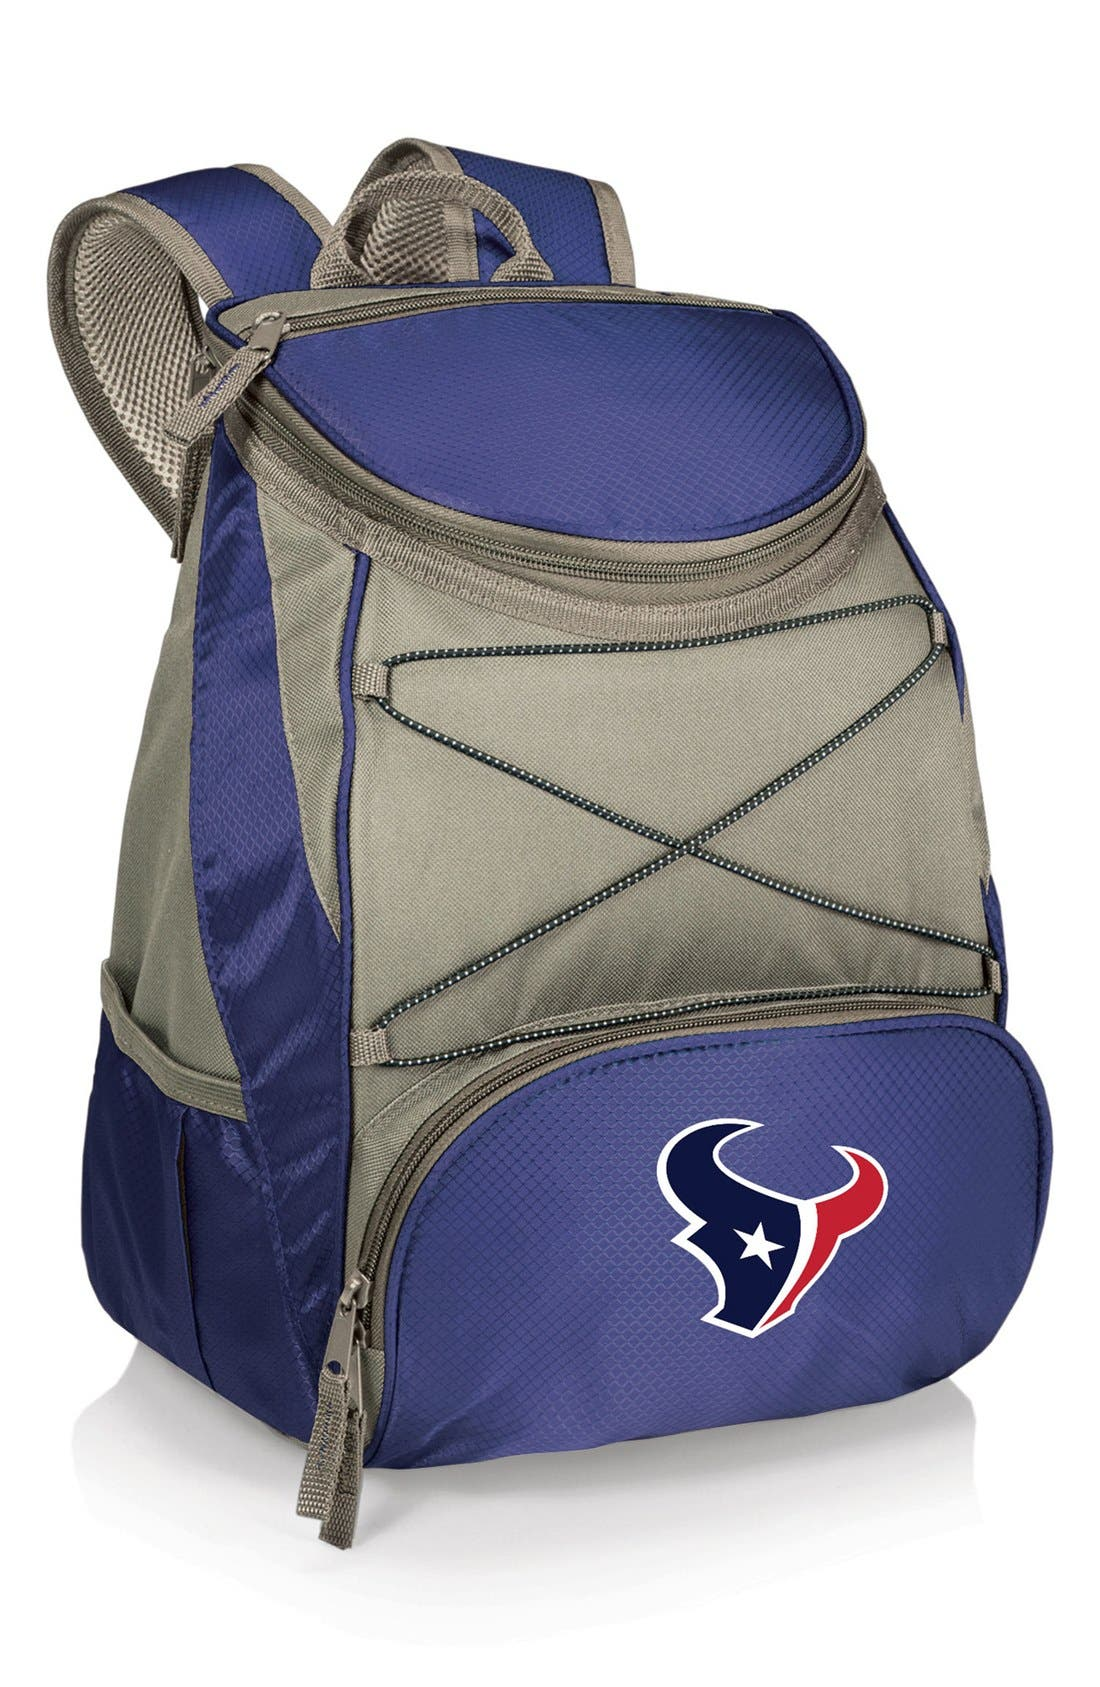 'PTX' Water Resistant Backpack Cooler,                             Main thumbnail 1, color,                             Houston Texans - Navy